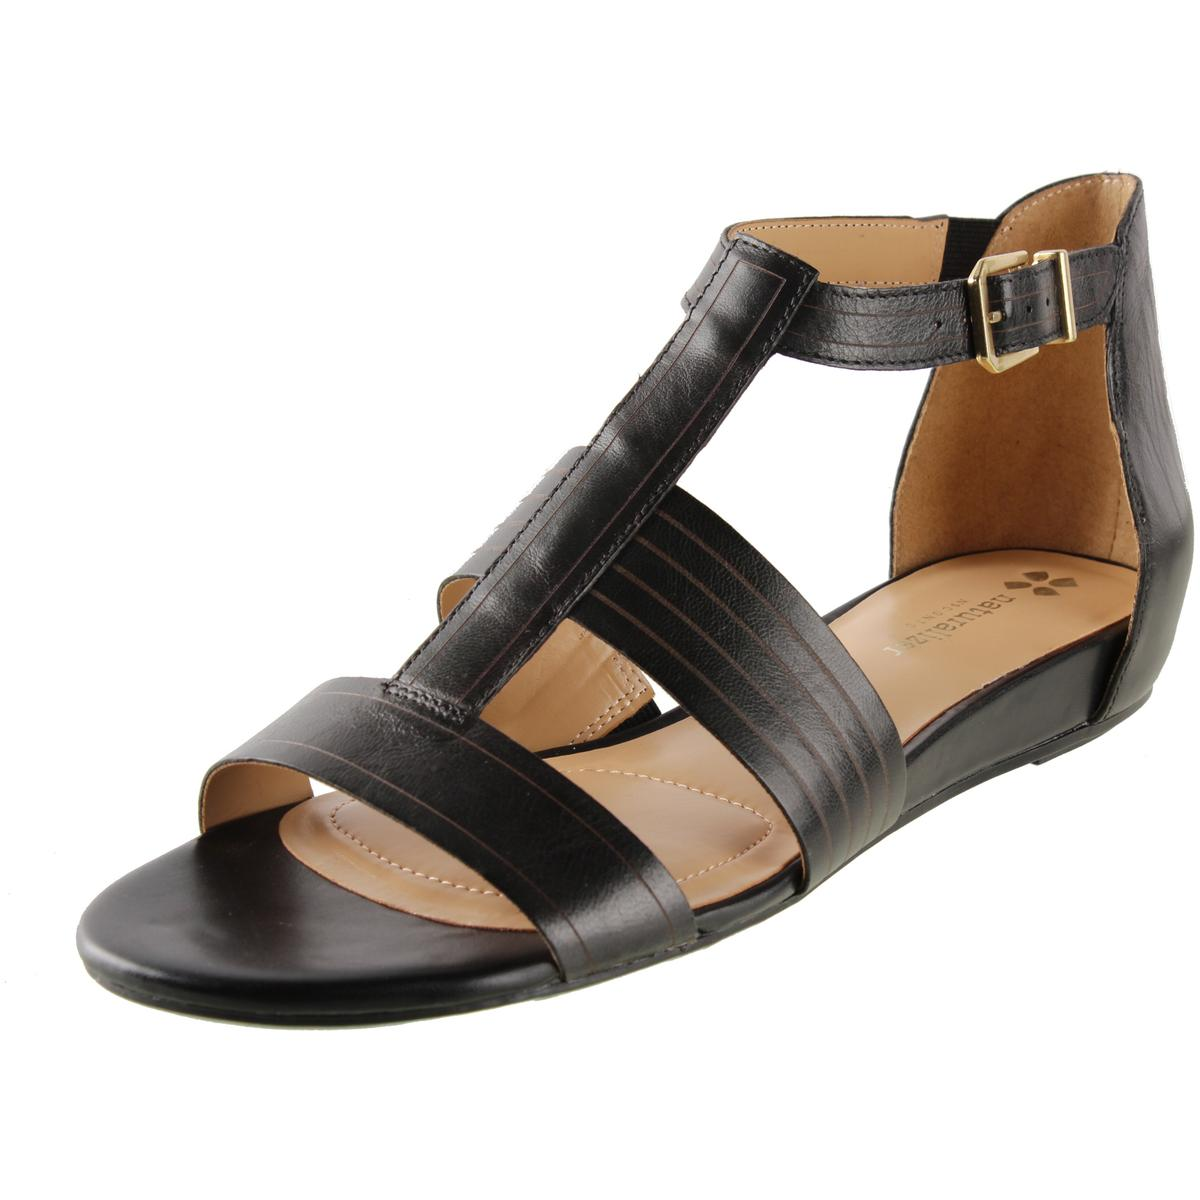 Naturalizer Womens Longing Leather Low Wedge T-Strap Sandals by Naturalizer